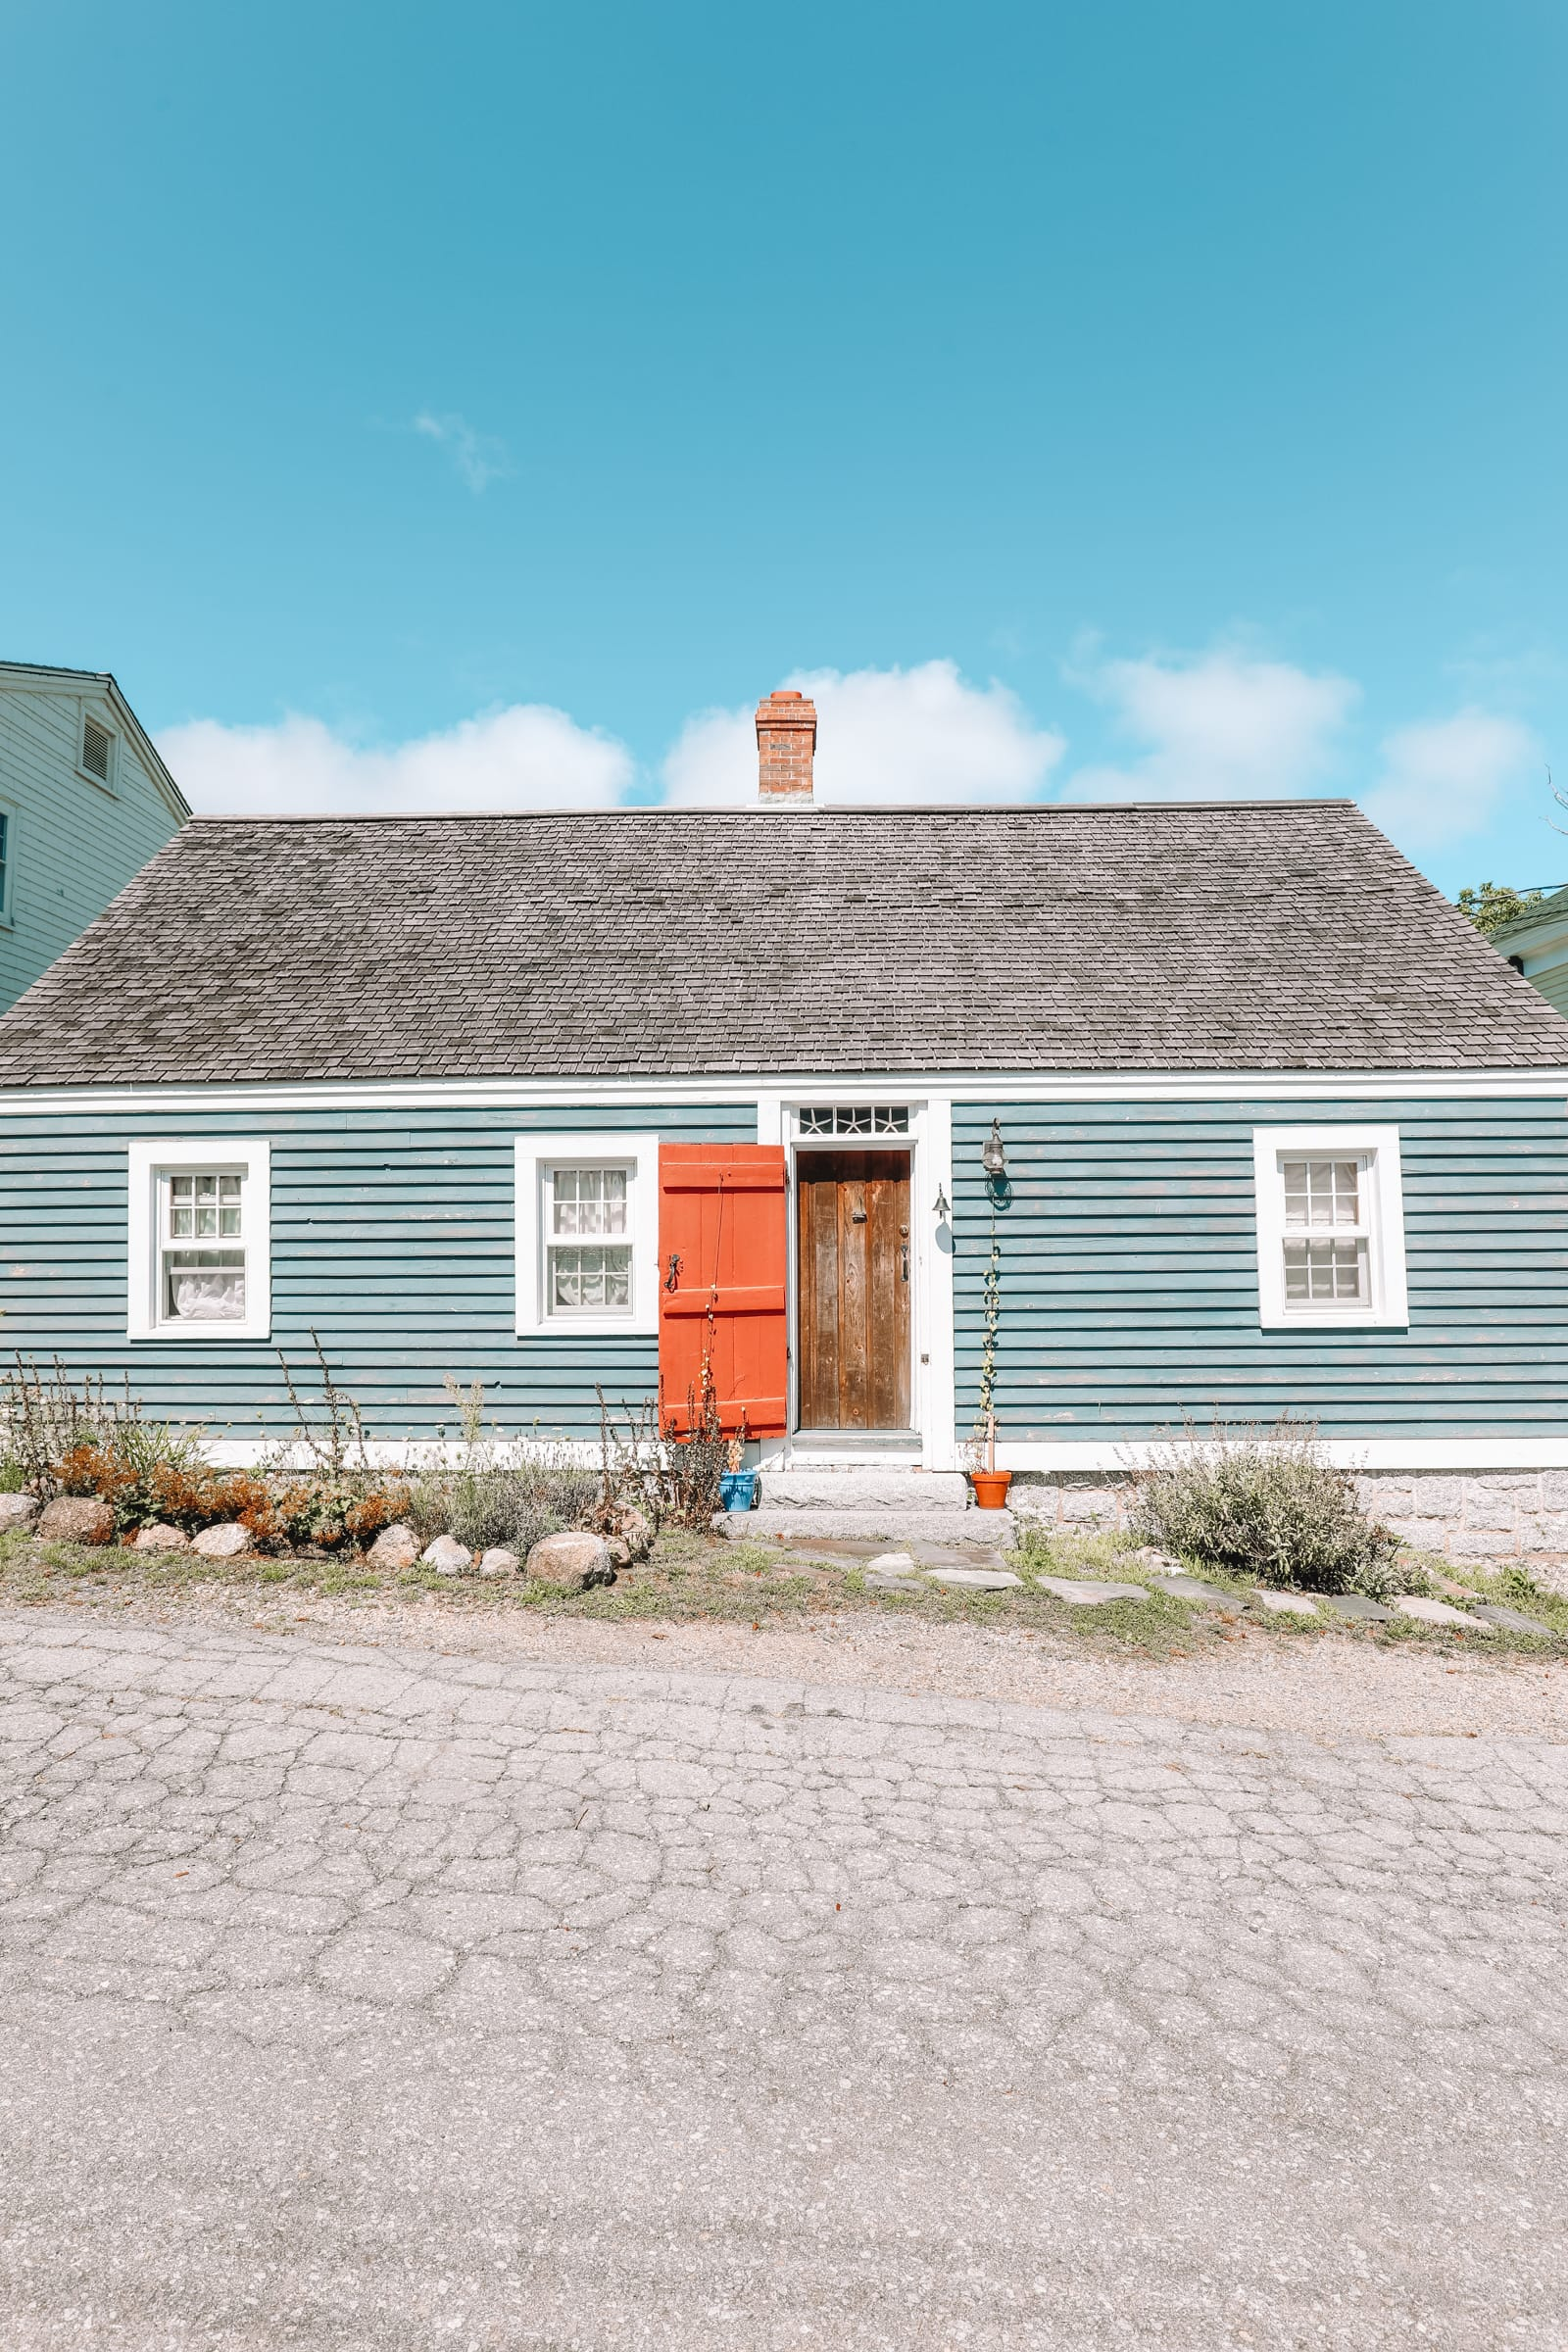 From Halifax To Peggy's Cove And Lunenburg... In Nova Scotia, Canada (43)